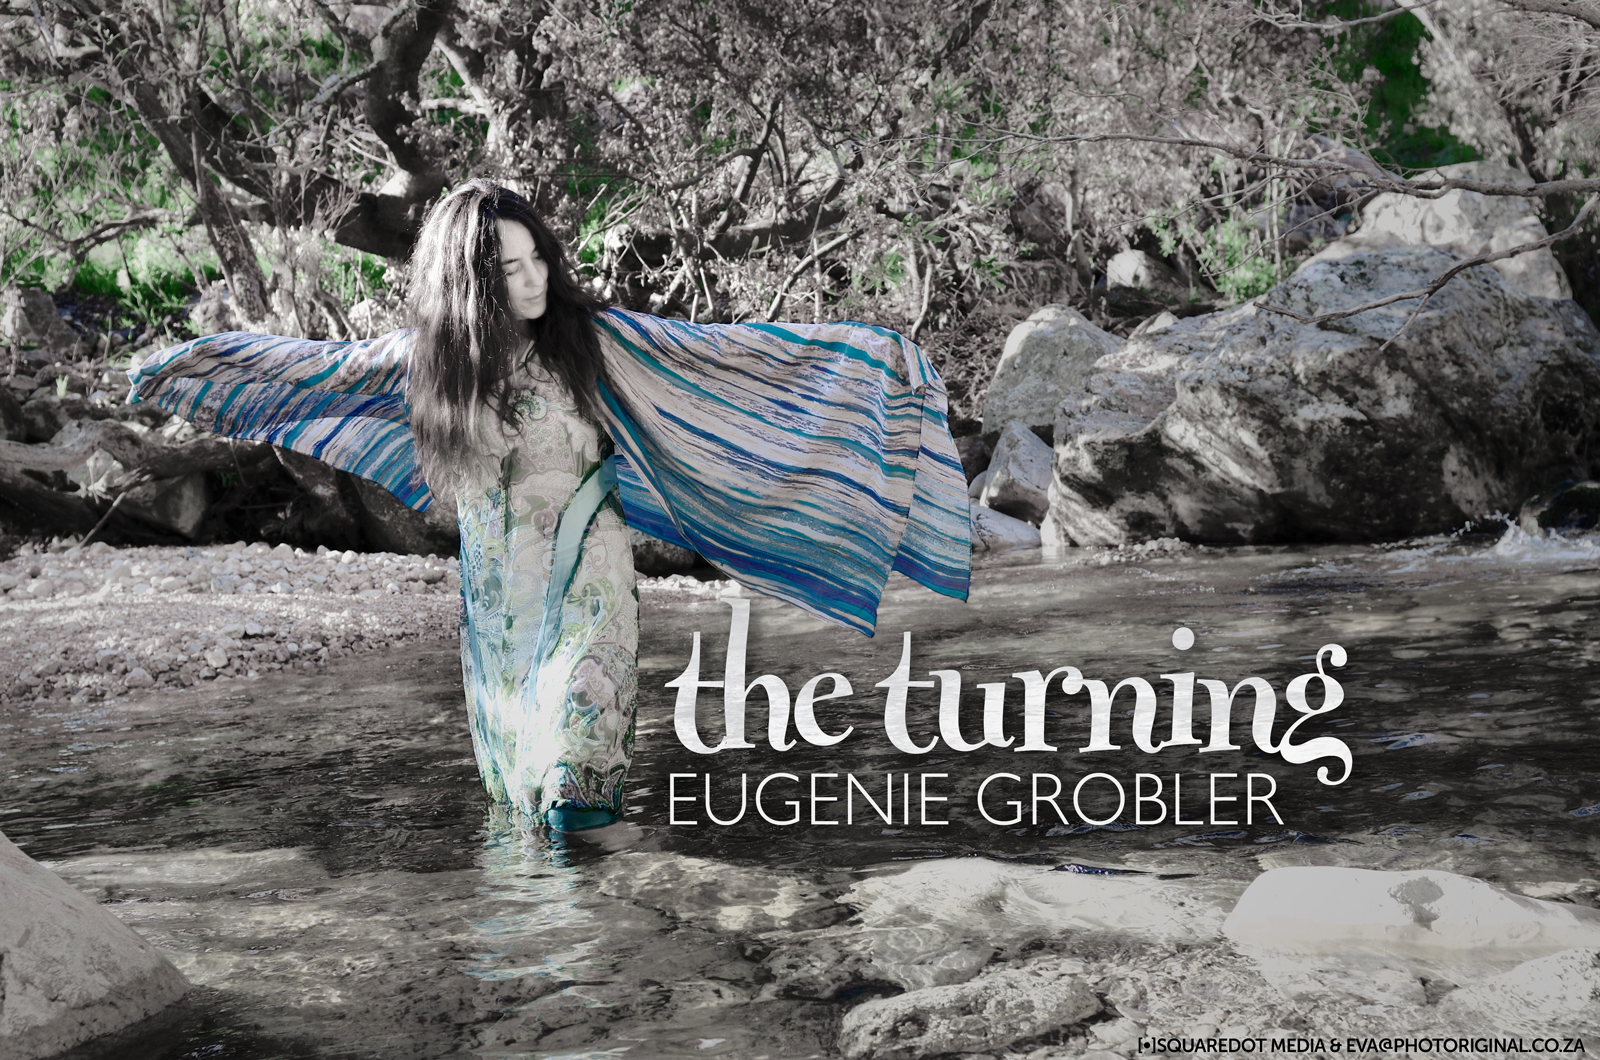 The Turning Eugenie Grobler